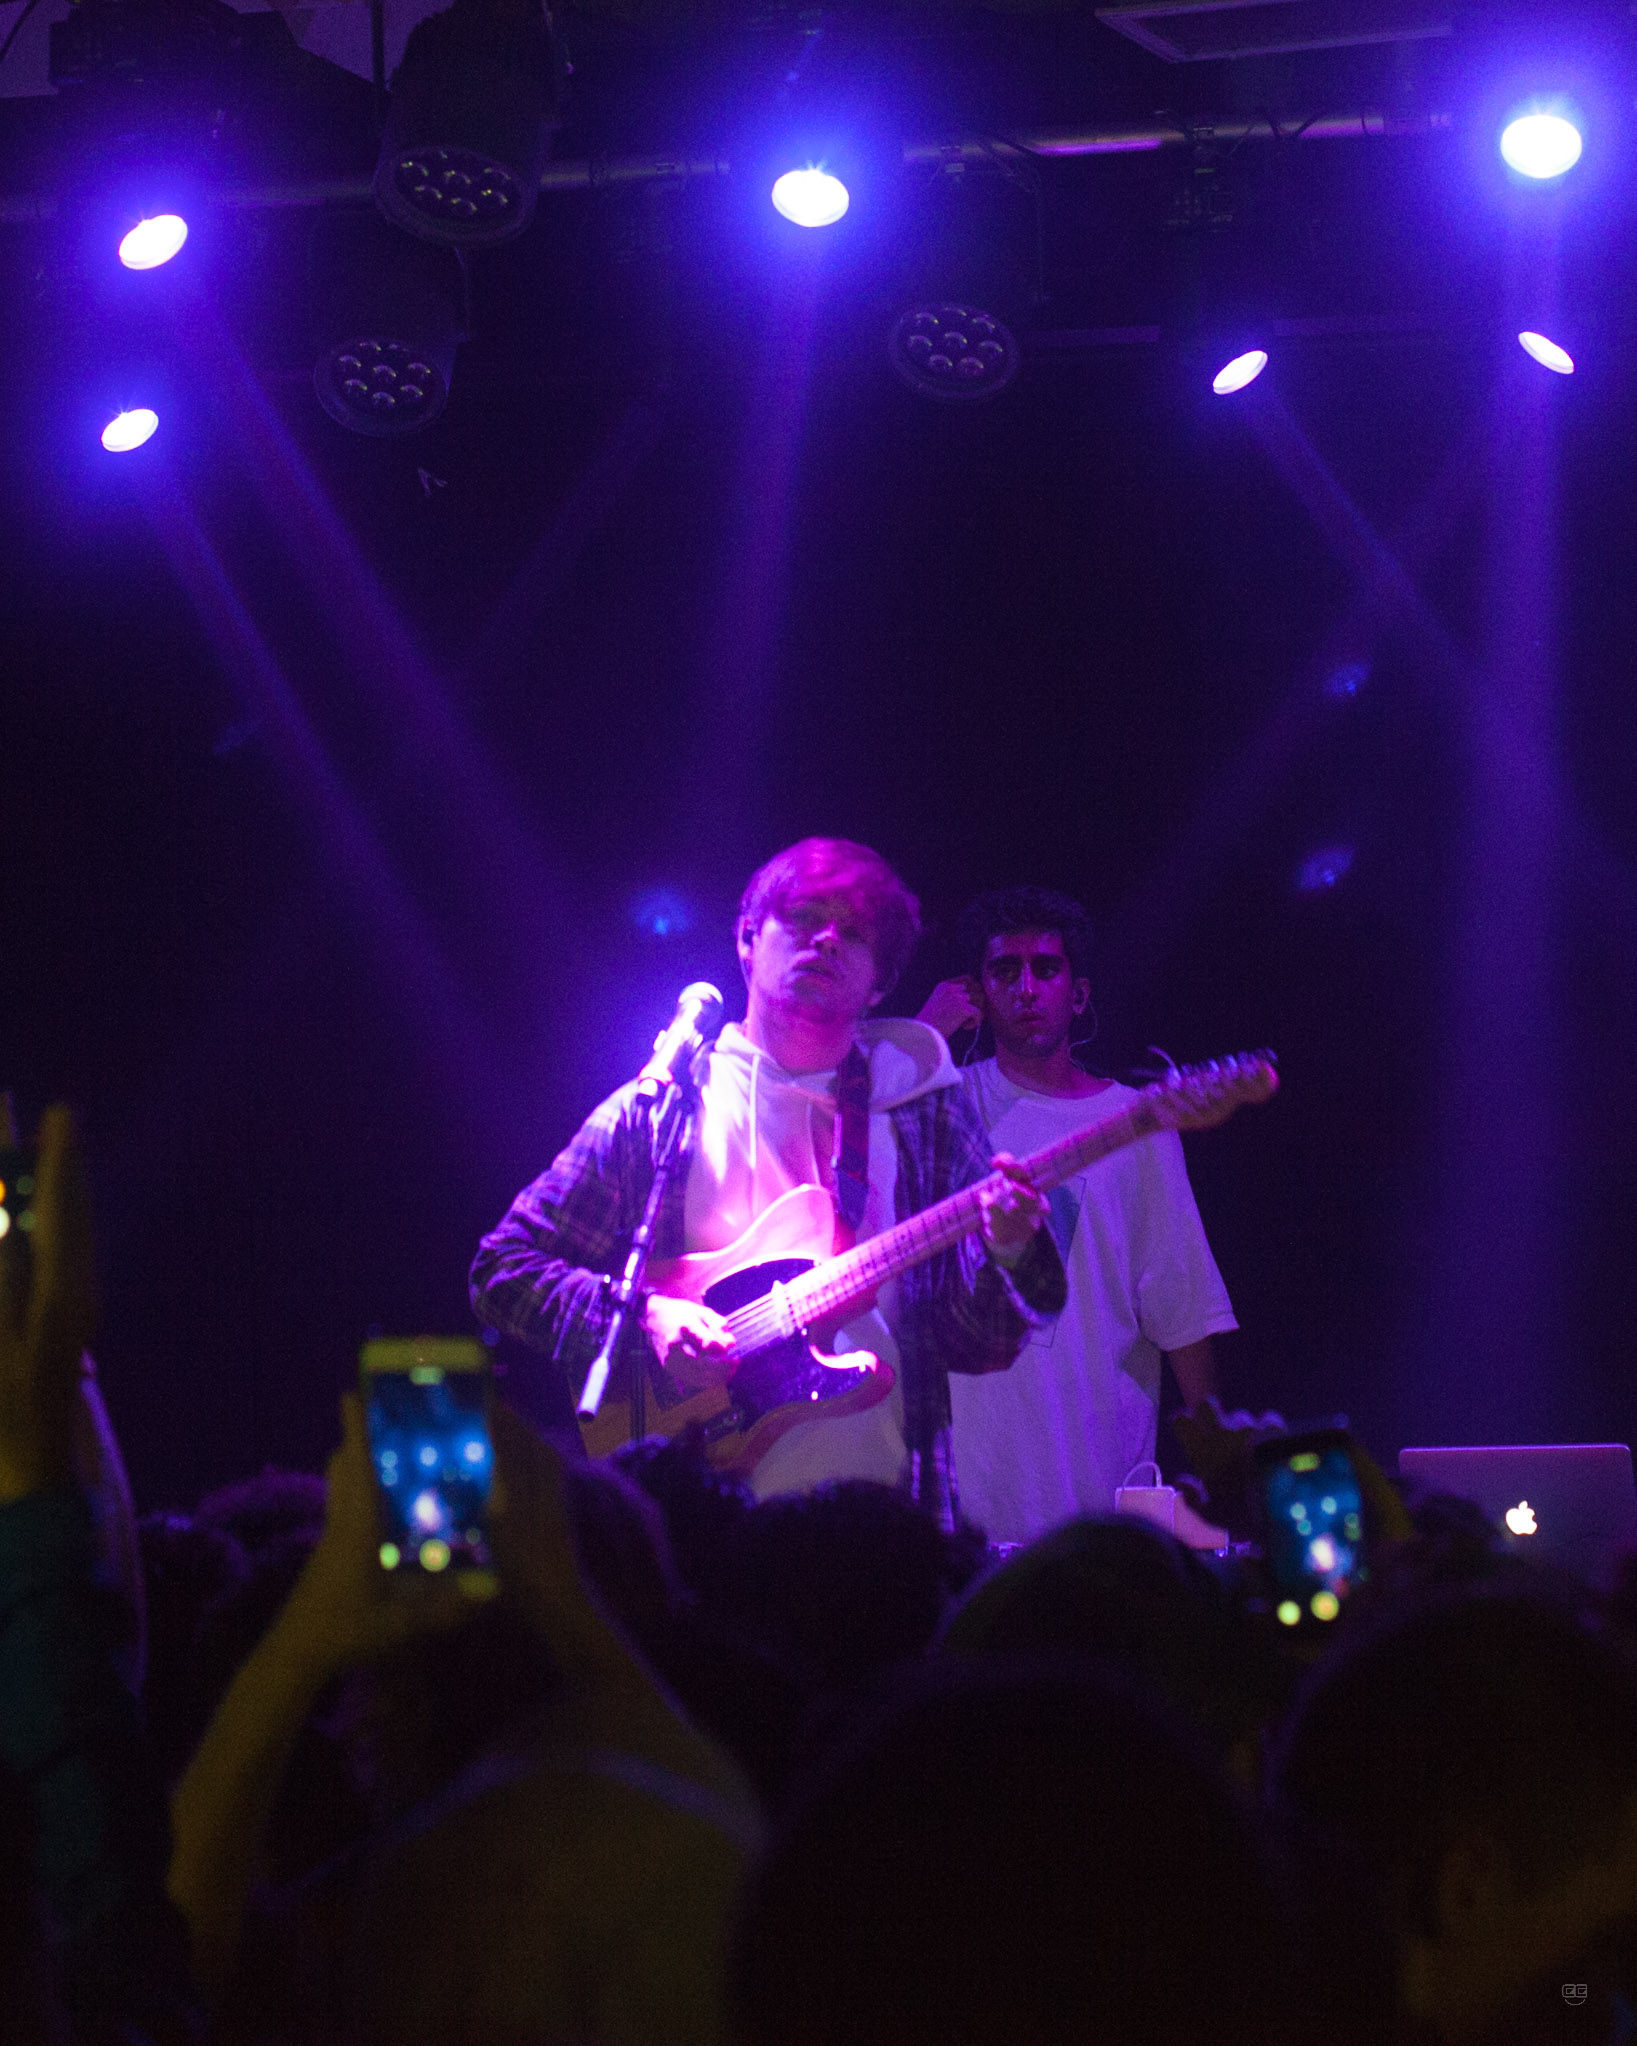 Guitarist and Vocalist bearface slows it down for everyone alongside DJ Romil Hemani during the band's first encore onstage at El Club in Detroit on 9/7/17